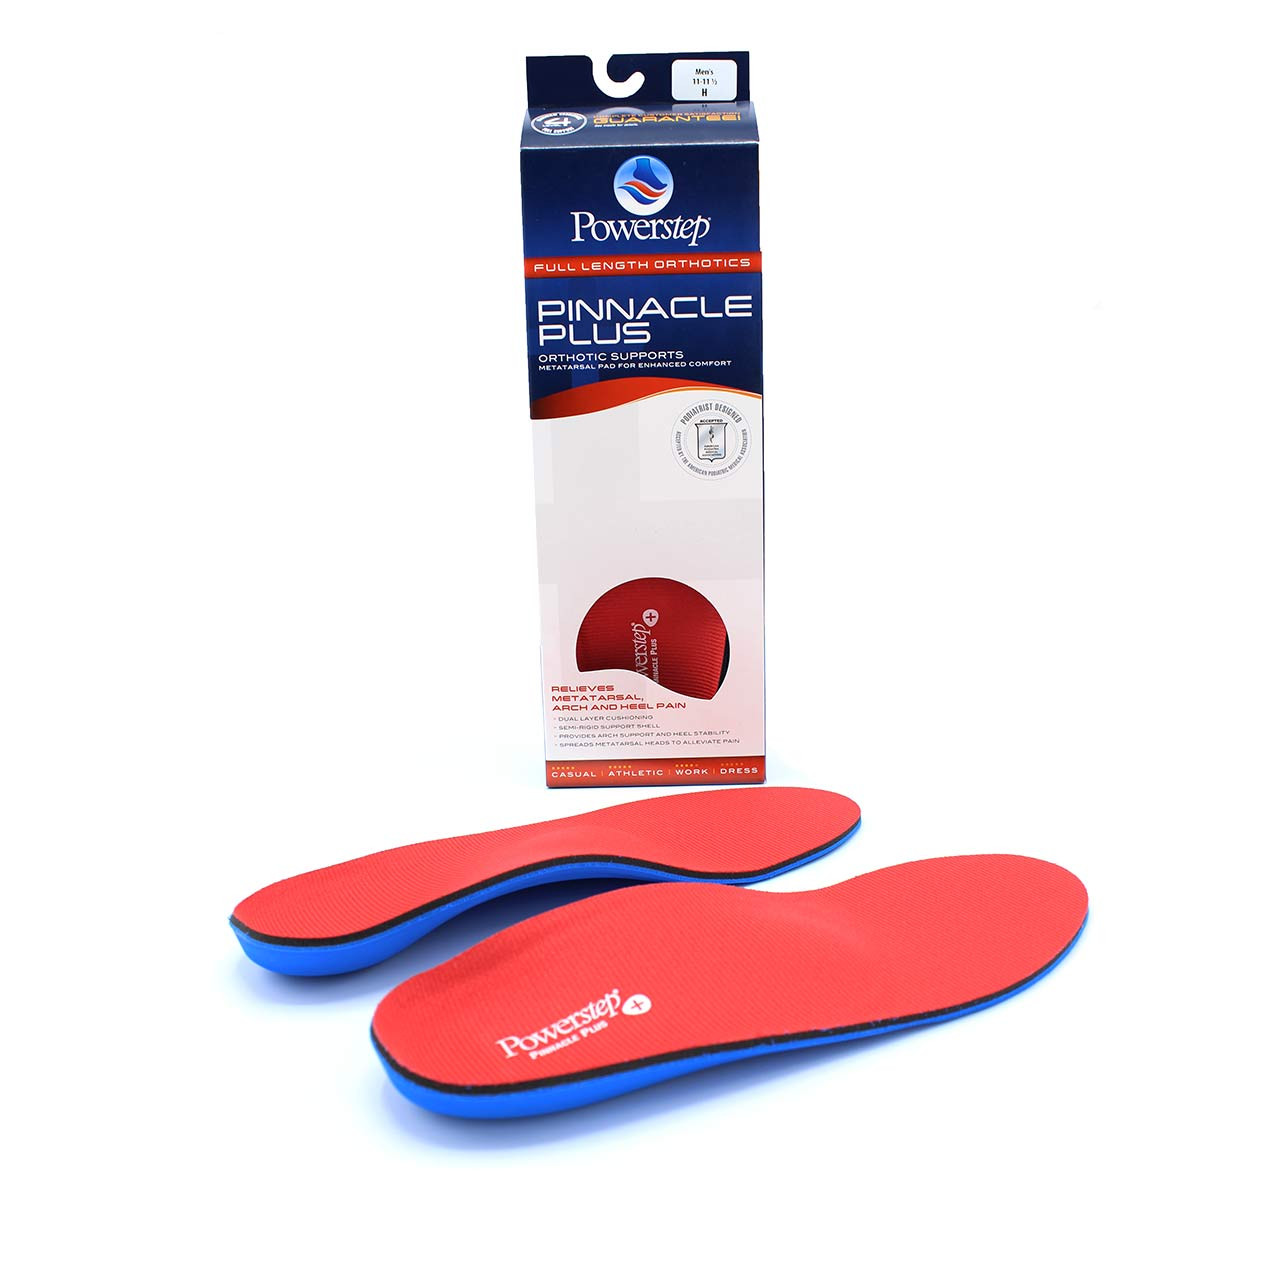 210fe8d04b ... Powerstep 5009 Pinnacle Plus Full Length Orthotic Shoe Inserts ...